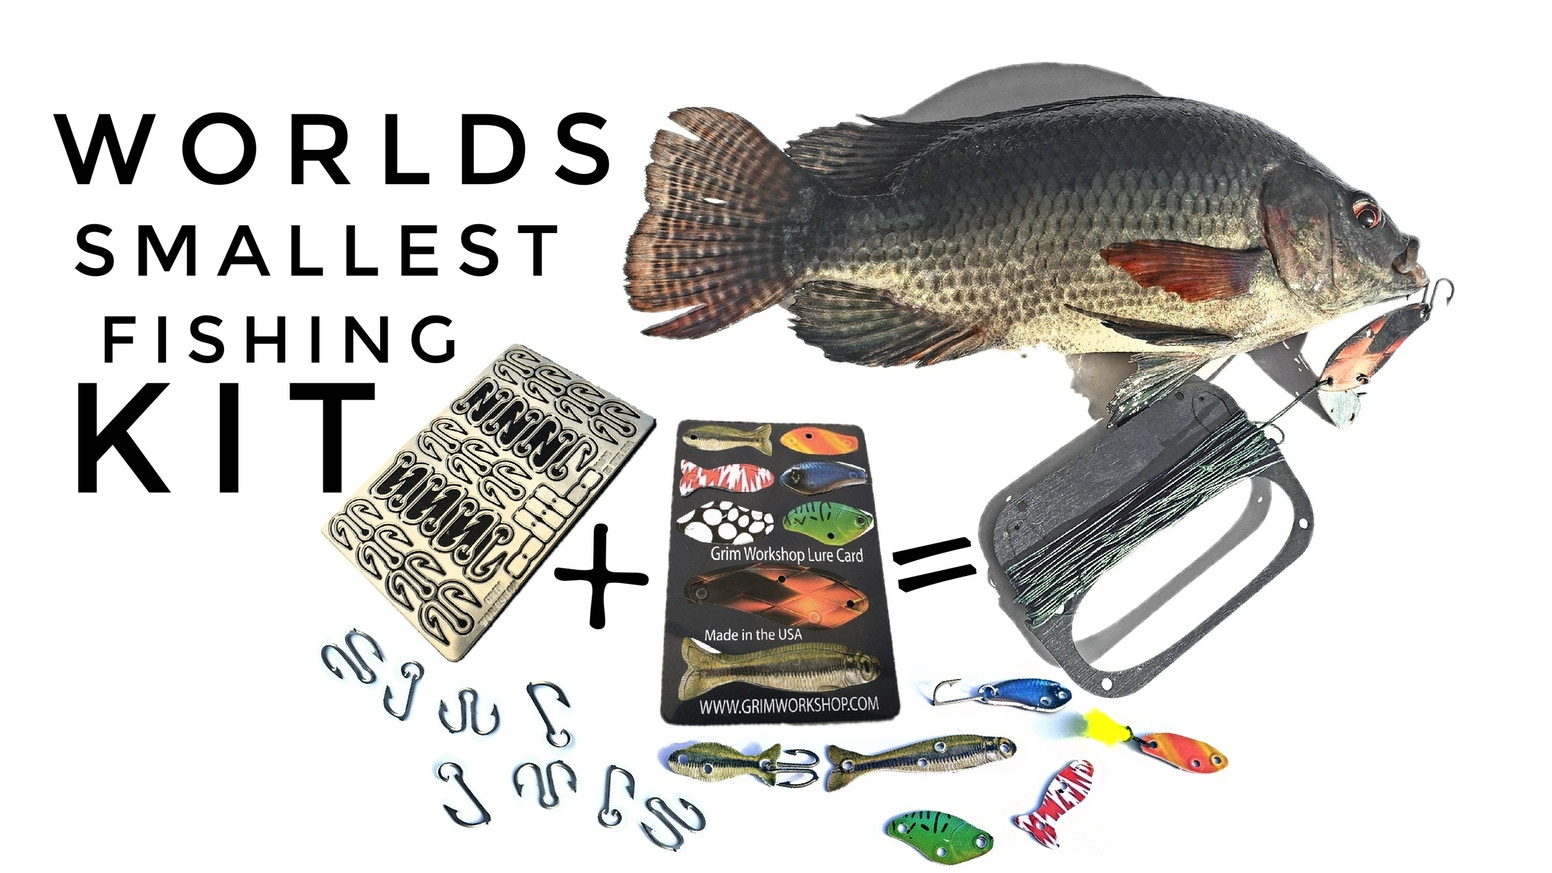 The worlds smallest and most compact fishing kit, for outdoor enthusiasts, hiking, camping, and survival. This fishing kit can even...